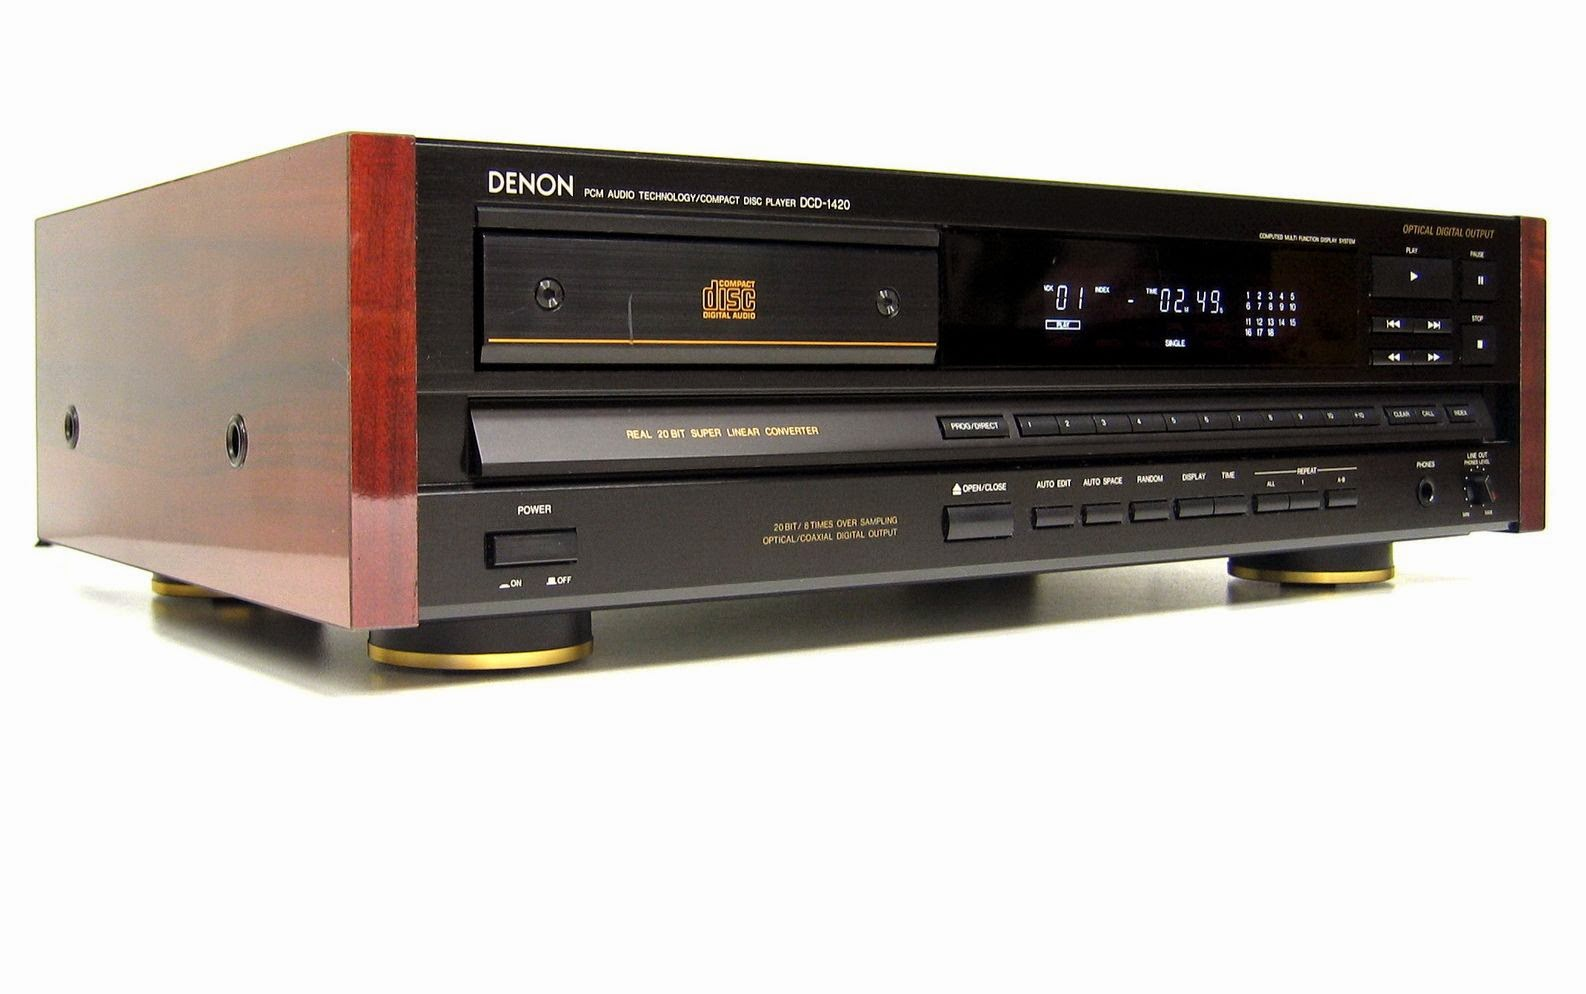 Denon Dcd 1420 Cd Player Audiobaza